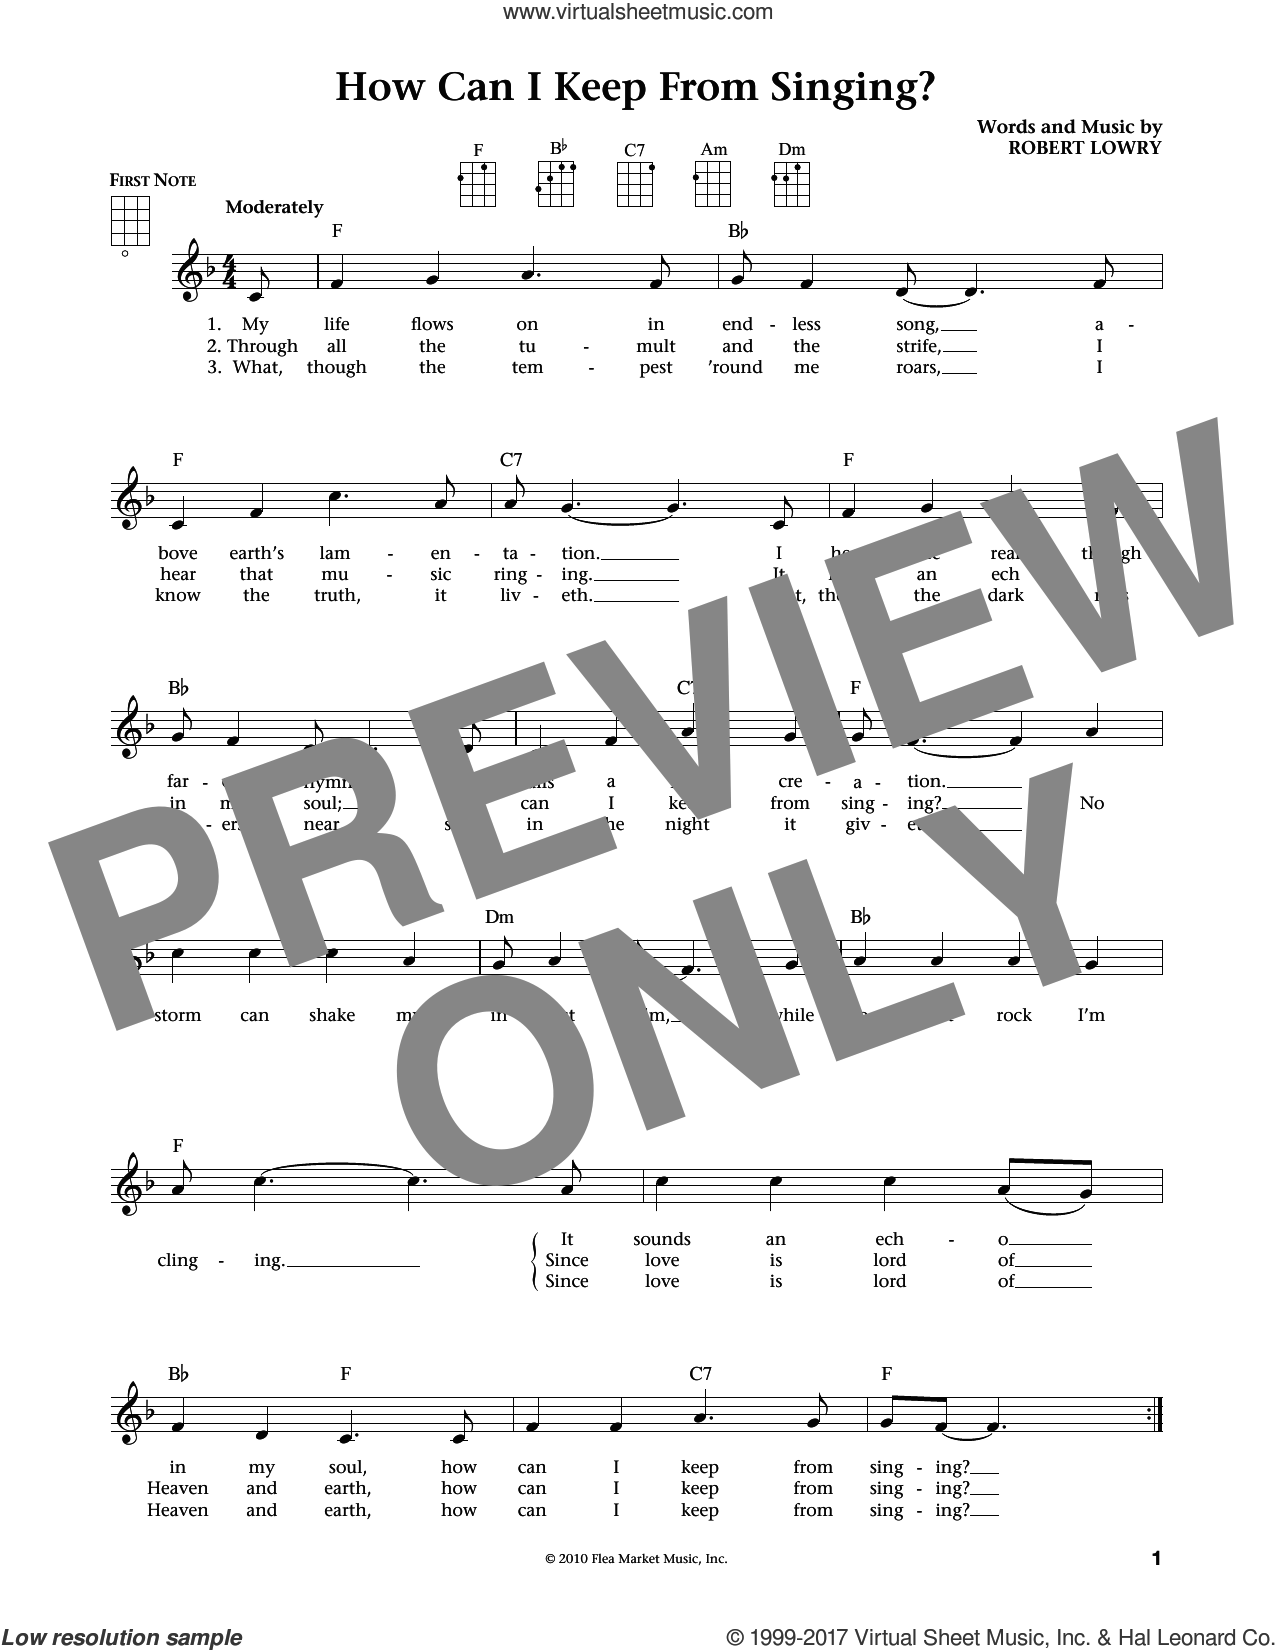 How Can I Keep From Singing sheet music for ukulele by Robert Lowry, Jim Beloff and Liz Beloff, intermediate skill level